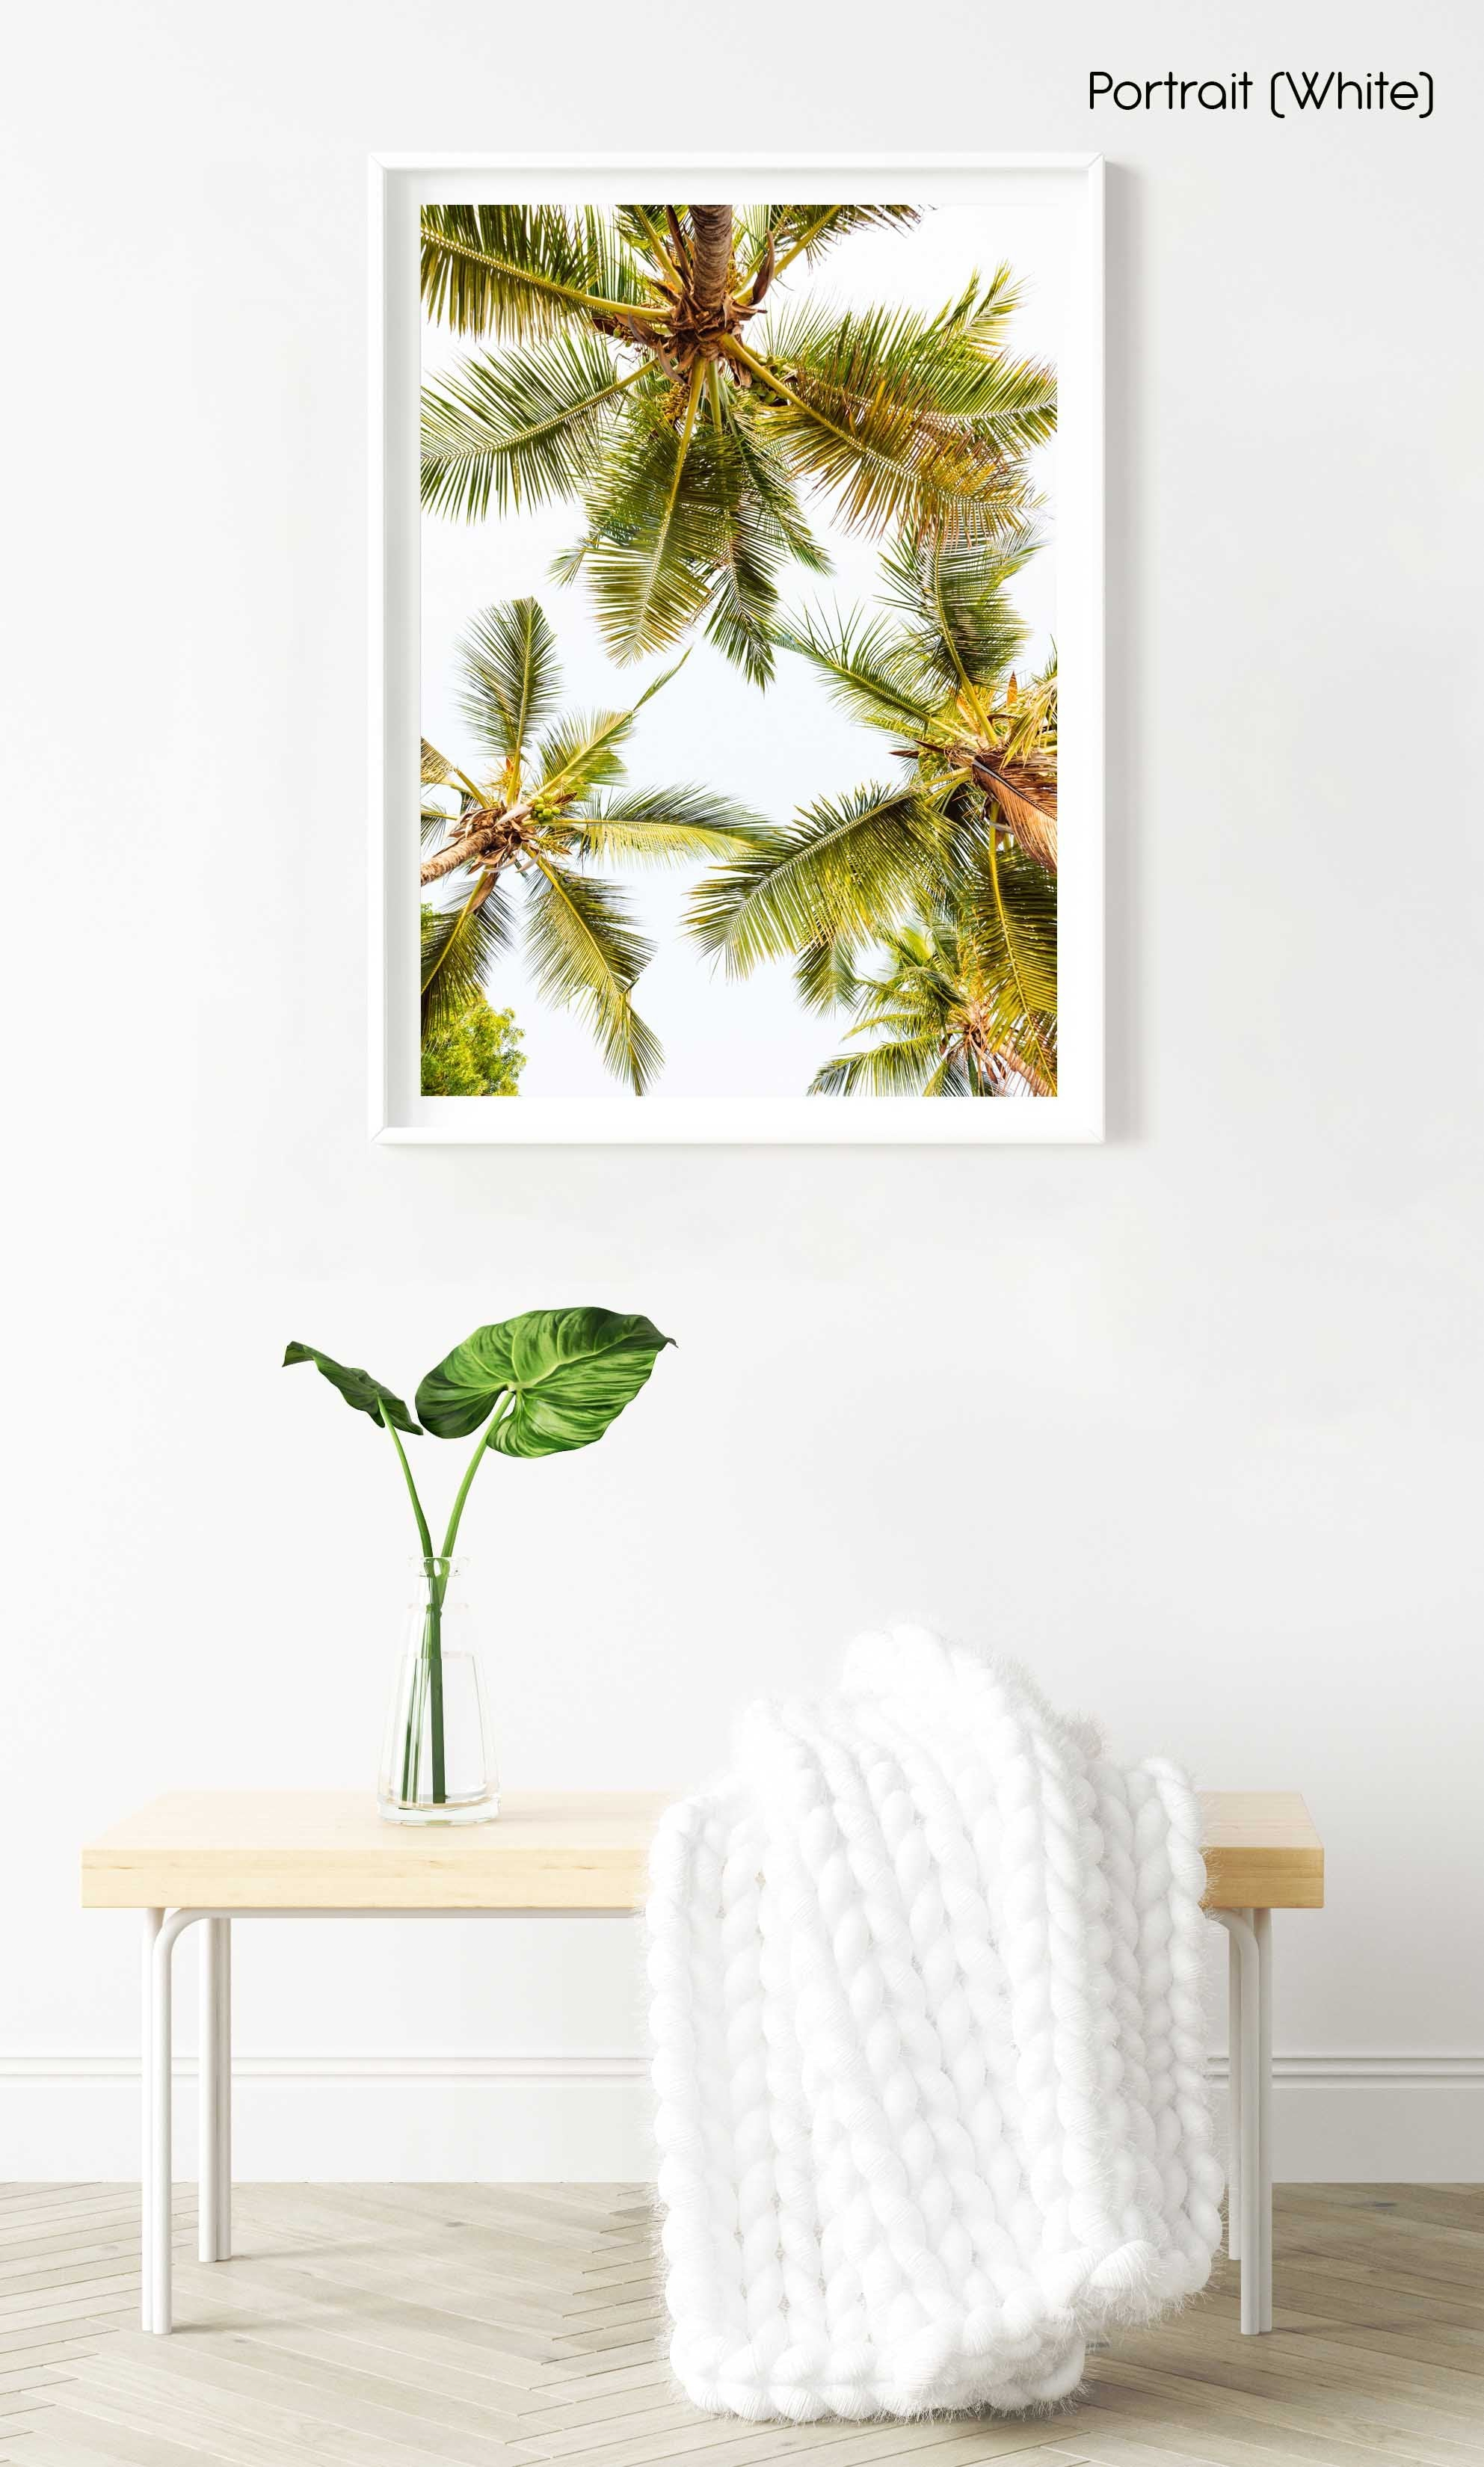 Green palm trees pattern and white sky in Kenya in a white fine art frame